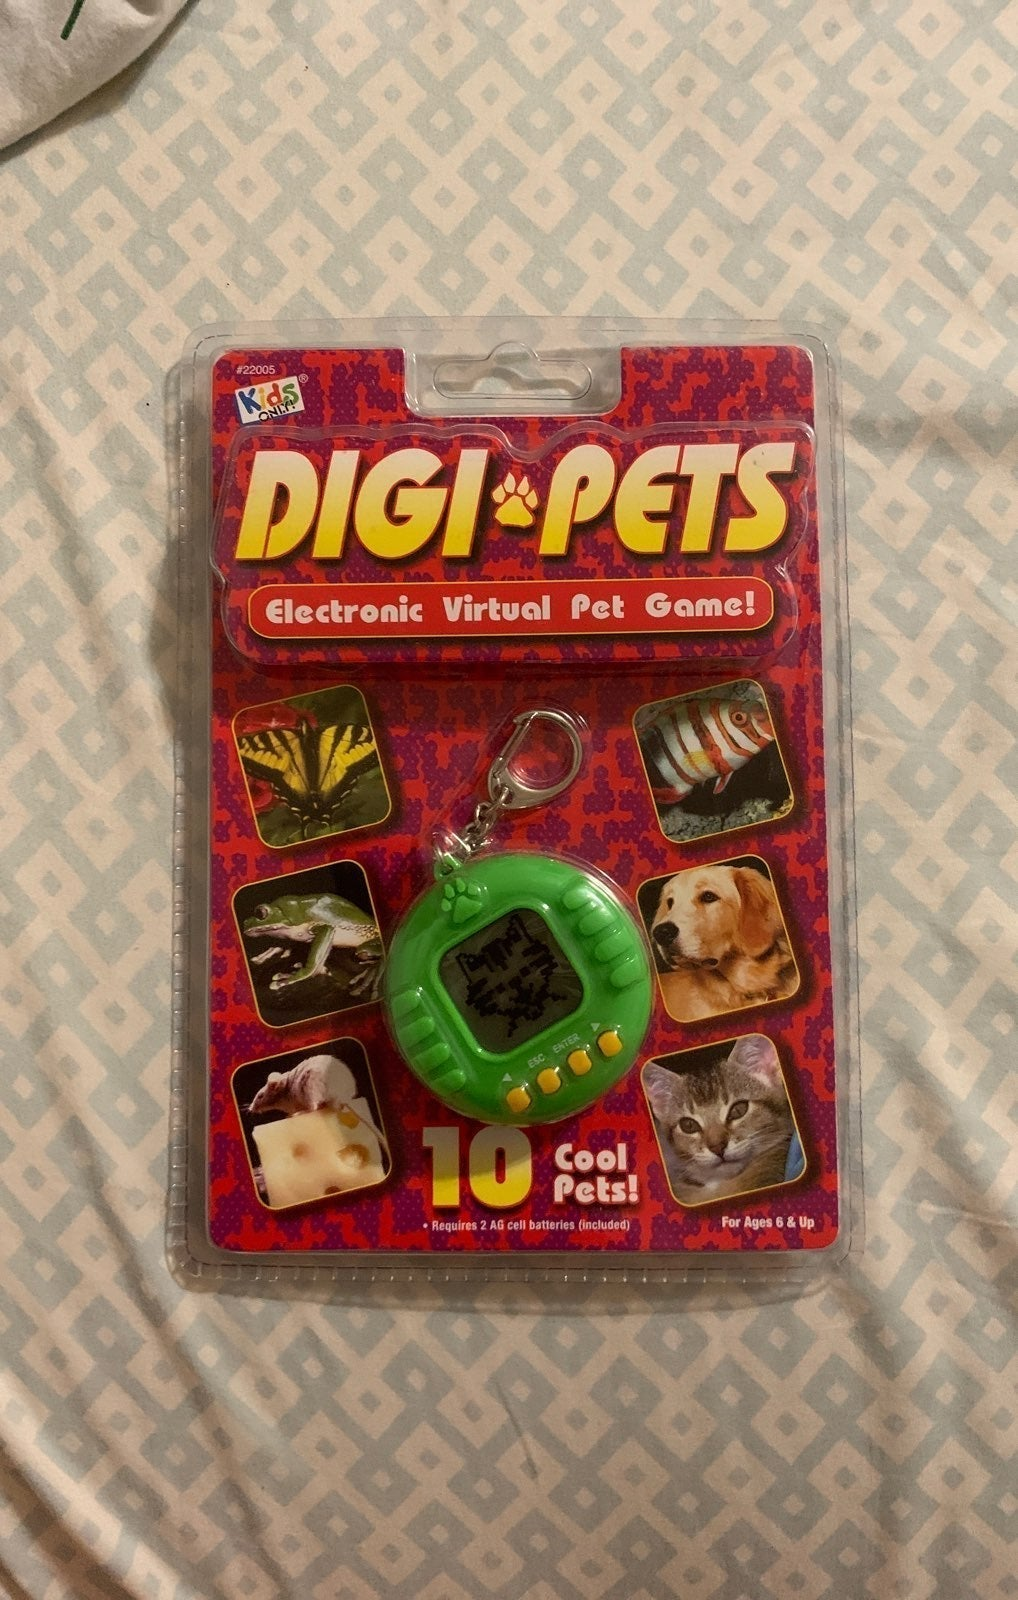 Digipets toy